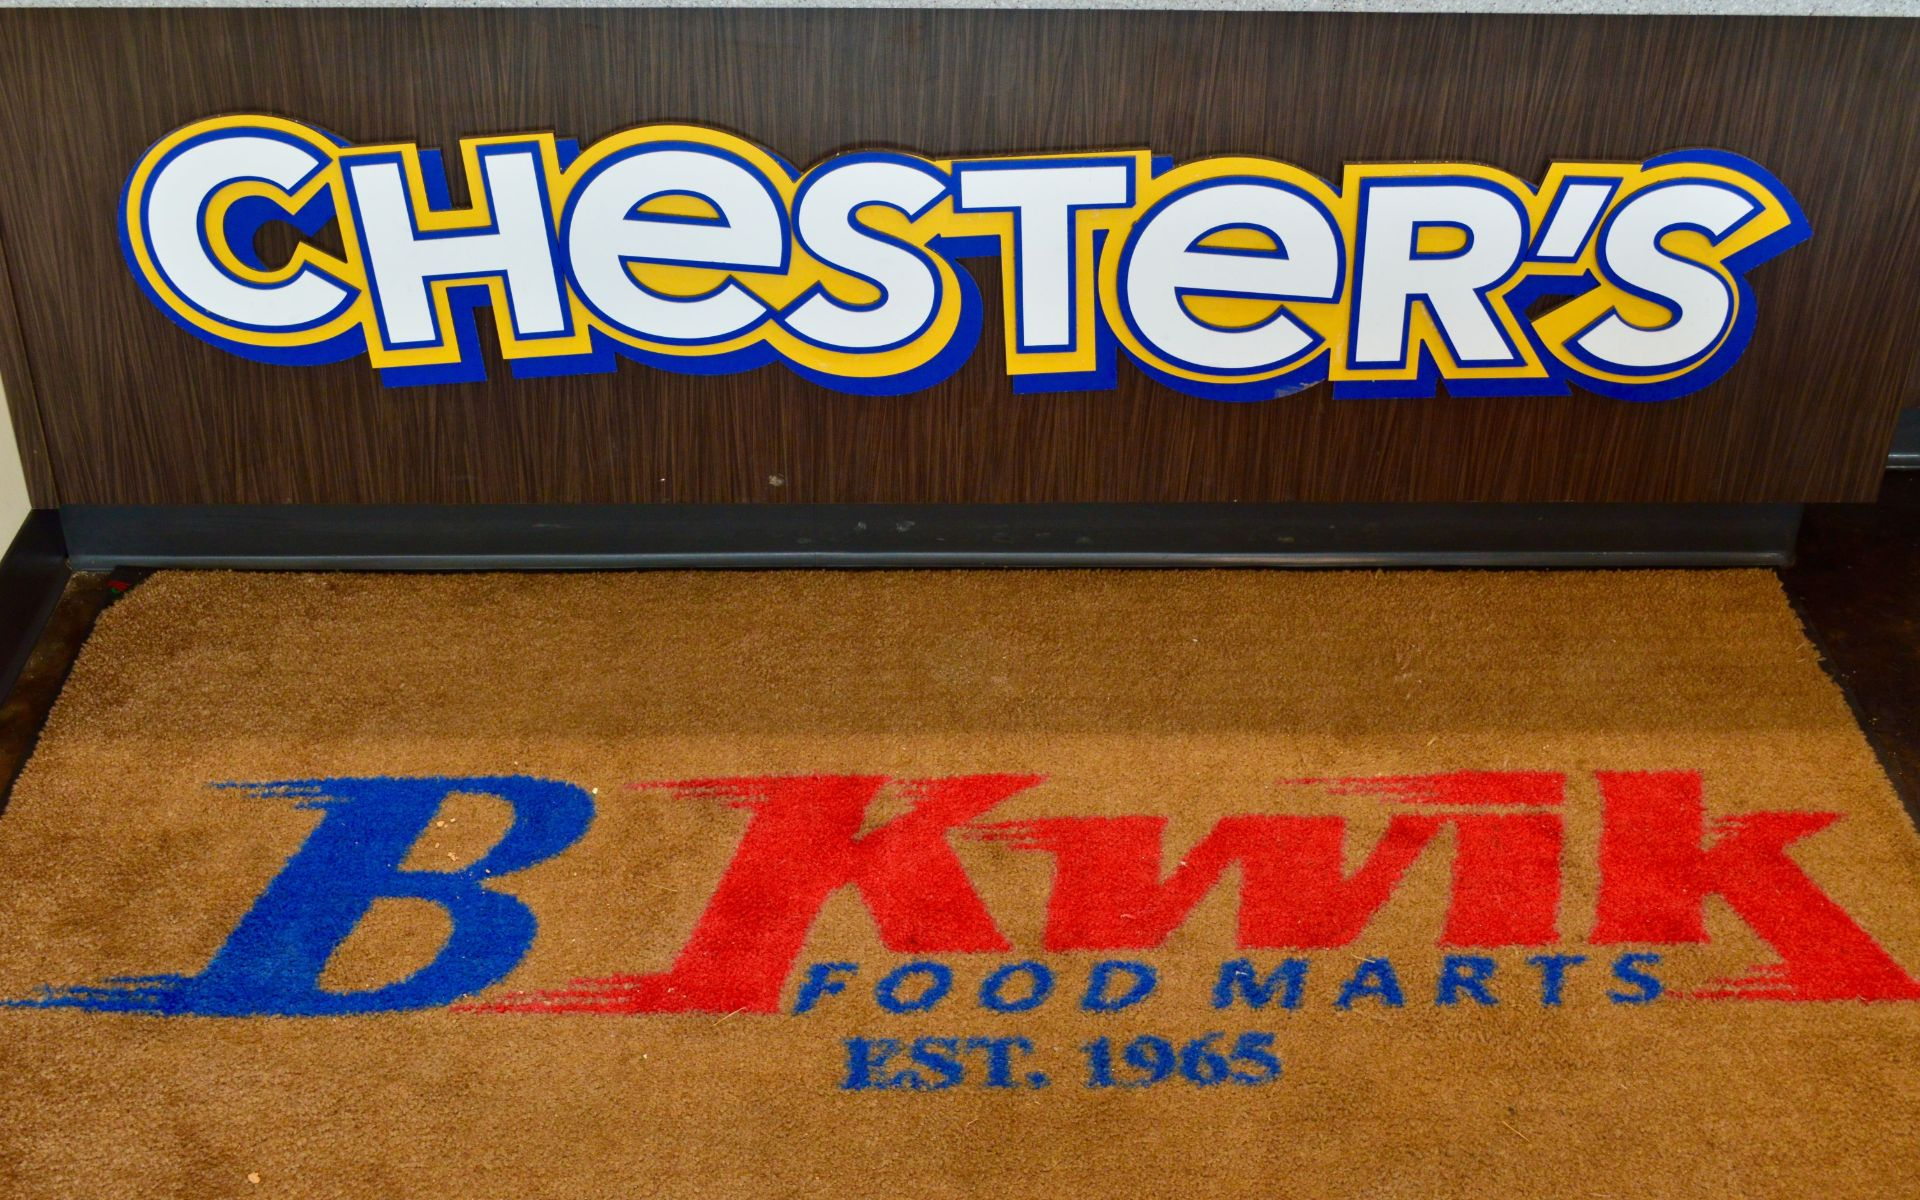 Chester's sign on the side of a counter with a B Kwik Food Marts branded carpet on the floor